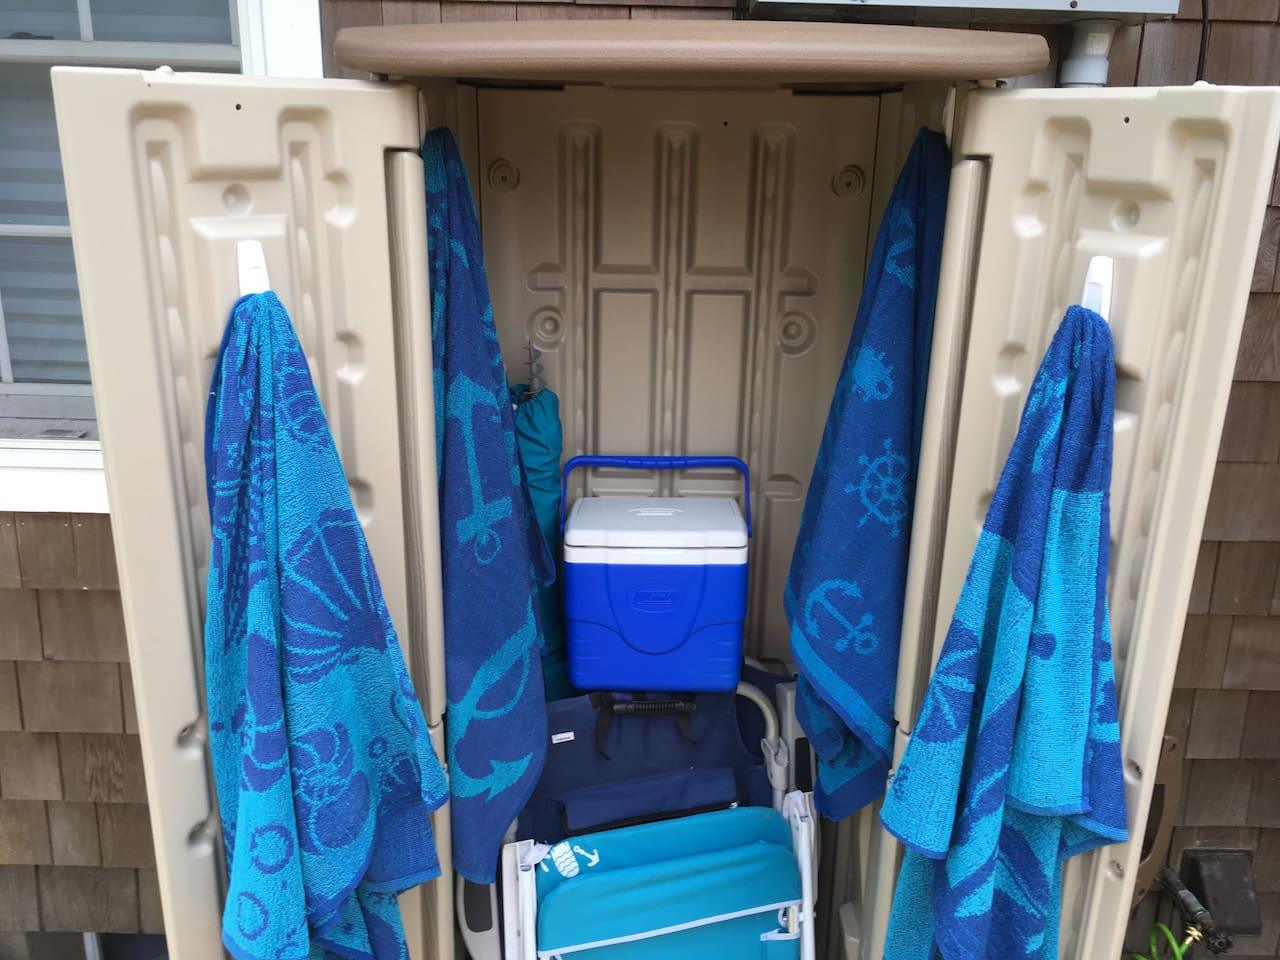 All your beach essentials are available; towels, 3 chairs, umbrella, cooler, and sand toys! The beach is approximately 5 miles, so a 10 minute car drive. There is a parking fee of $25 per car/ per day.